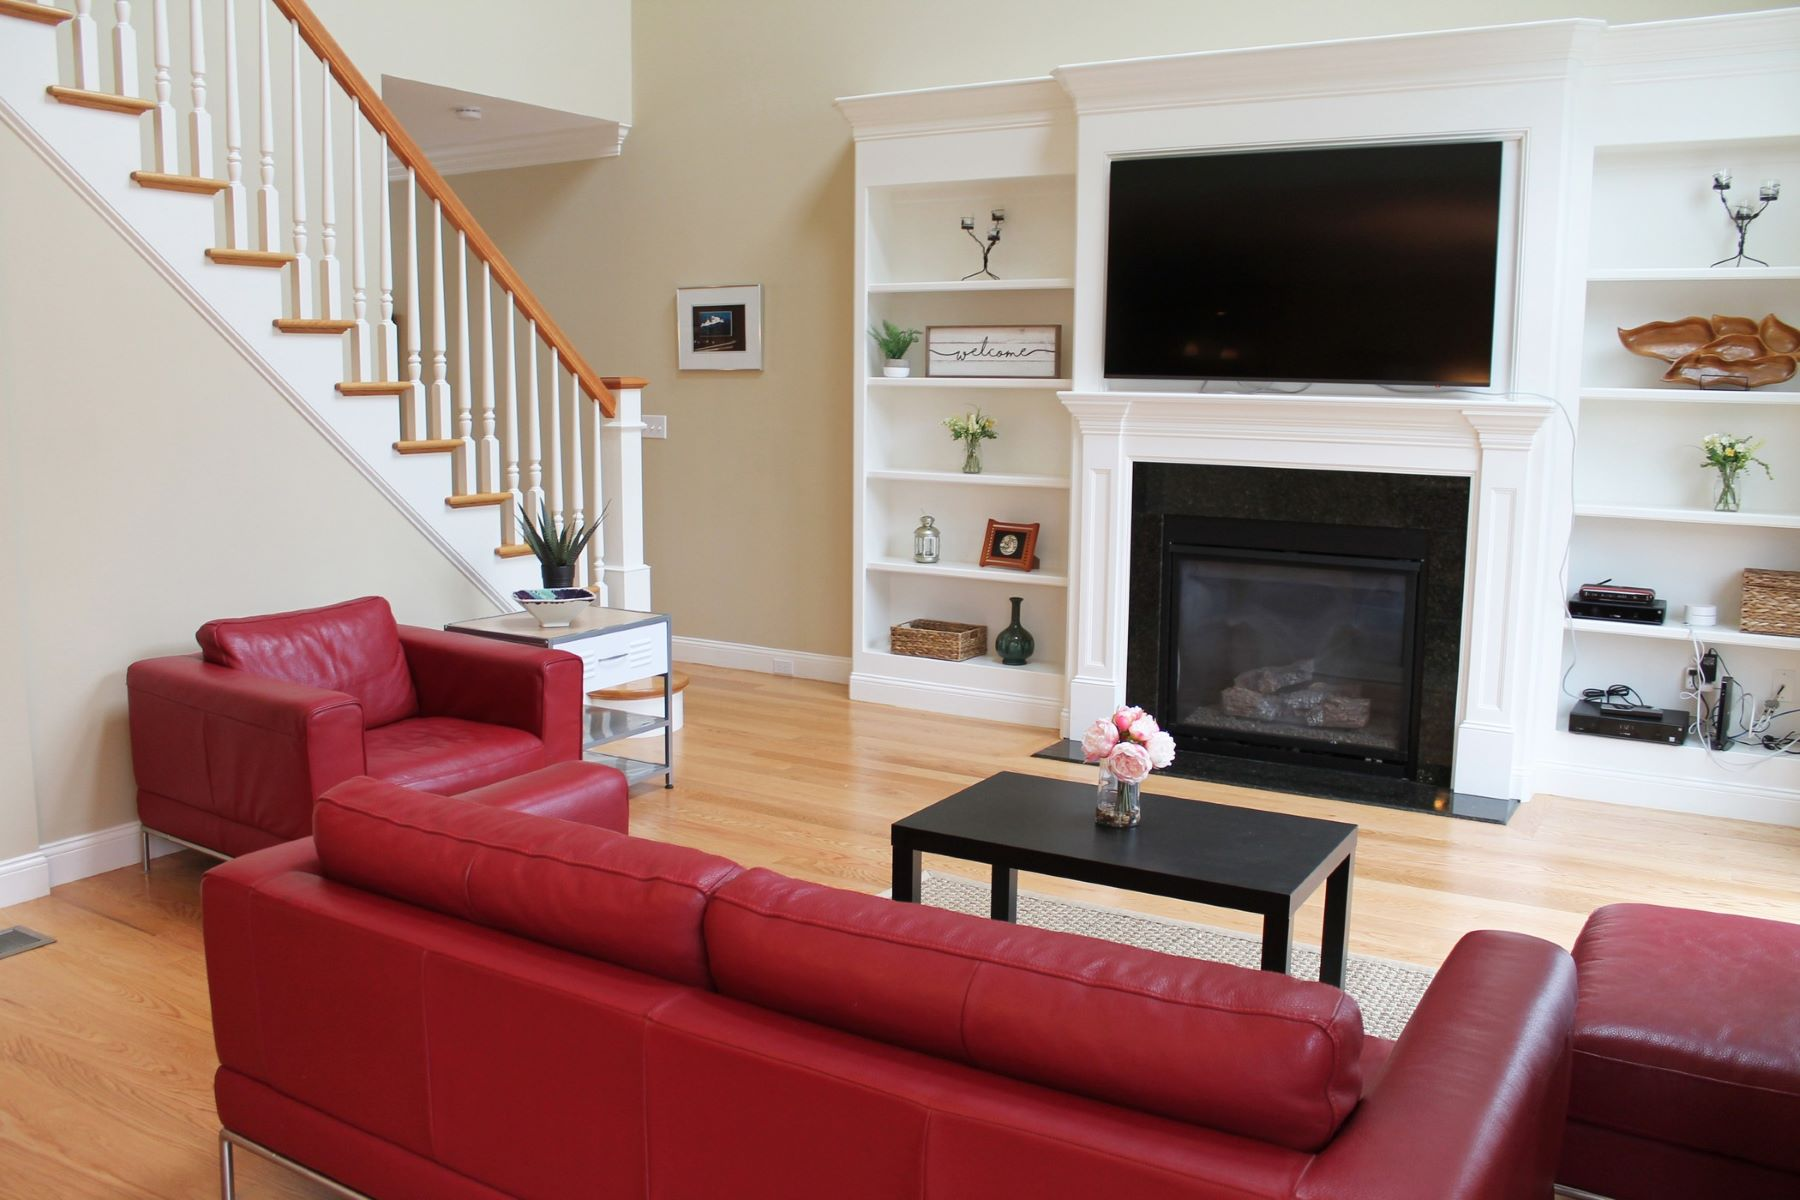 Condominiums for Sale at 288 Main Street 2 Acton, Massachusetts 01720 United States